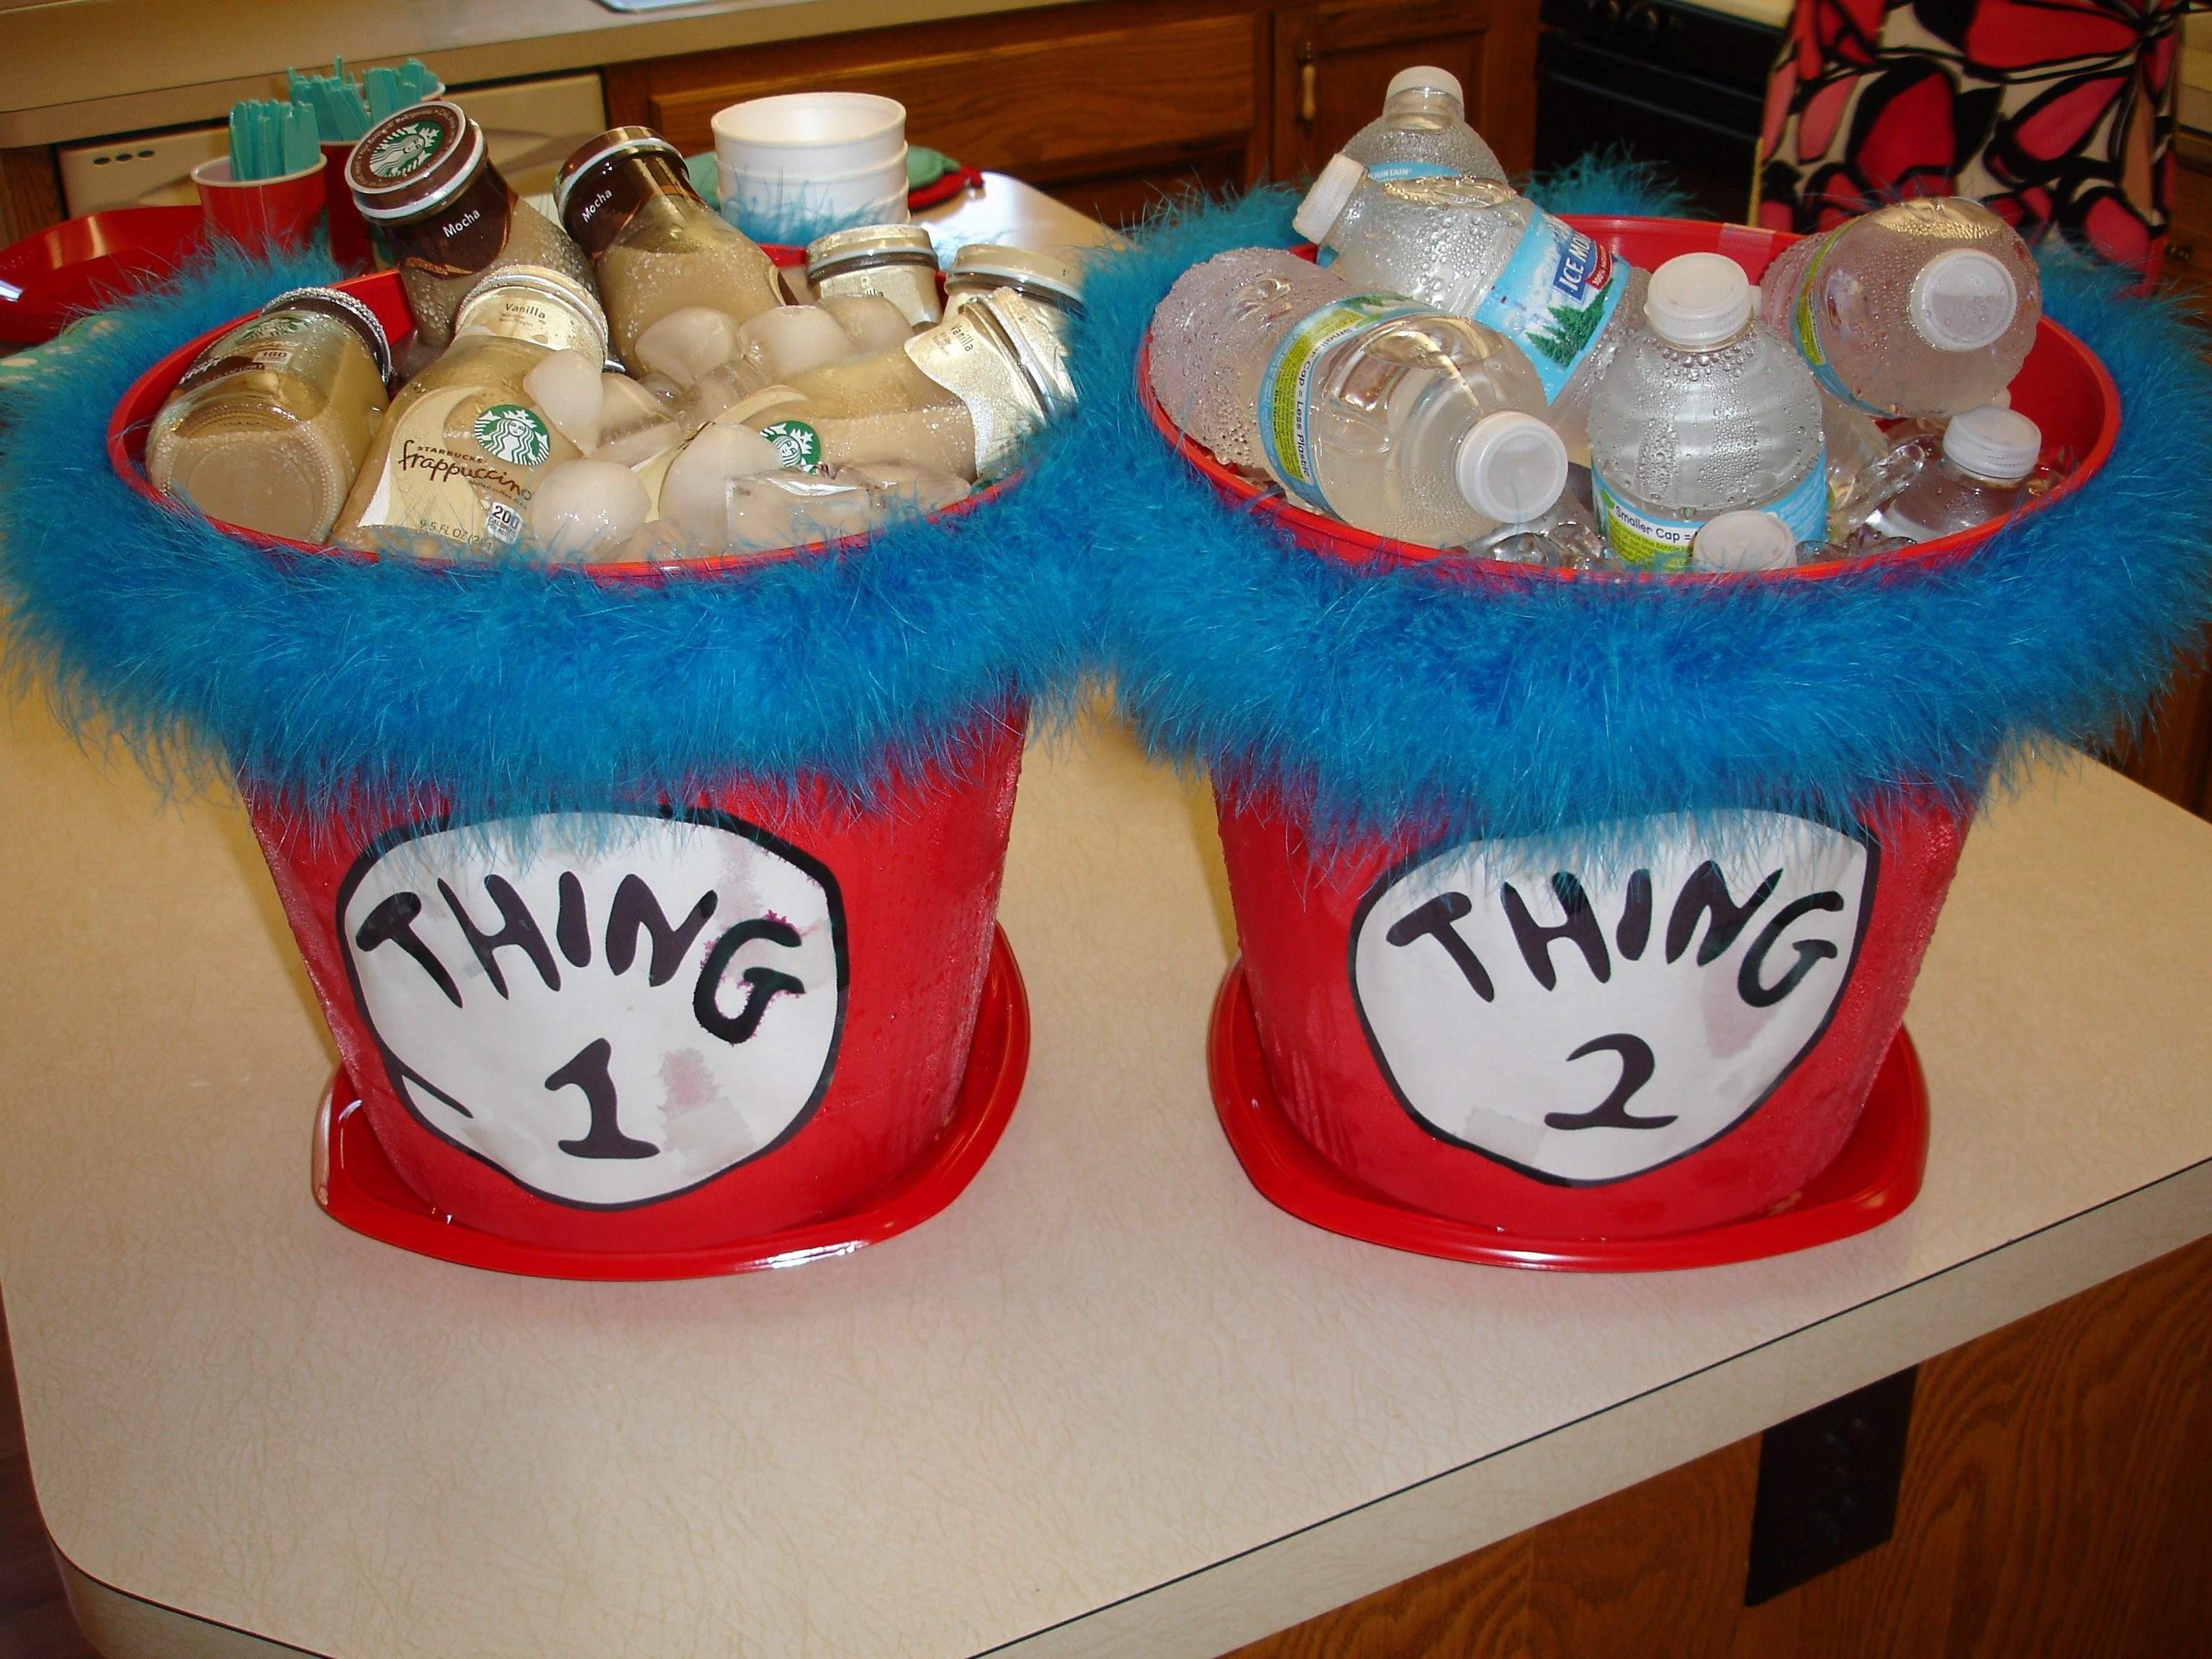 10 Fantastic Thing 1 And Thing 2 Baby Shower Ideas thing 1 and thing 2 baby shower decorations baby showers ideas 2021